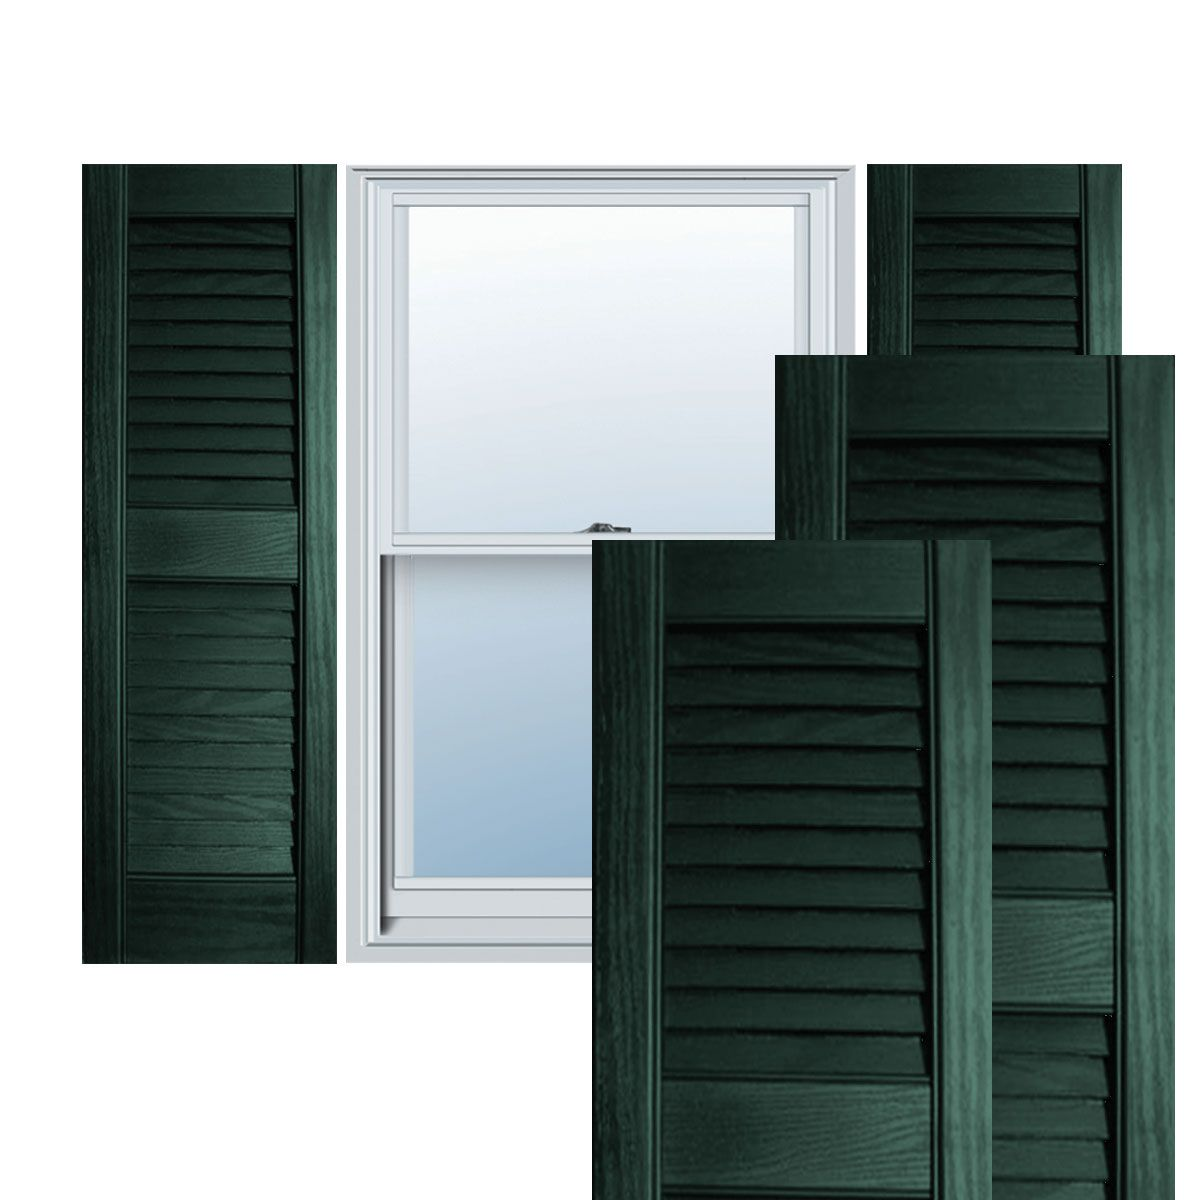 12 X 47 Builders Choice Vinyl Open Louver Window Shutters W Shutter Spikes Exterior Vinyl Shutters Window Shutters Blue Shutters